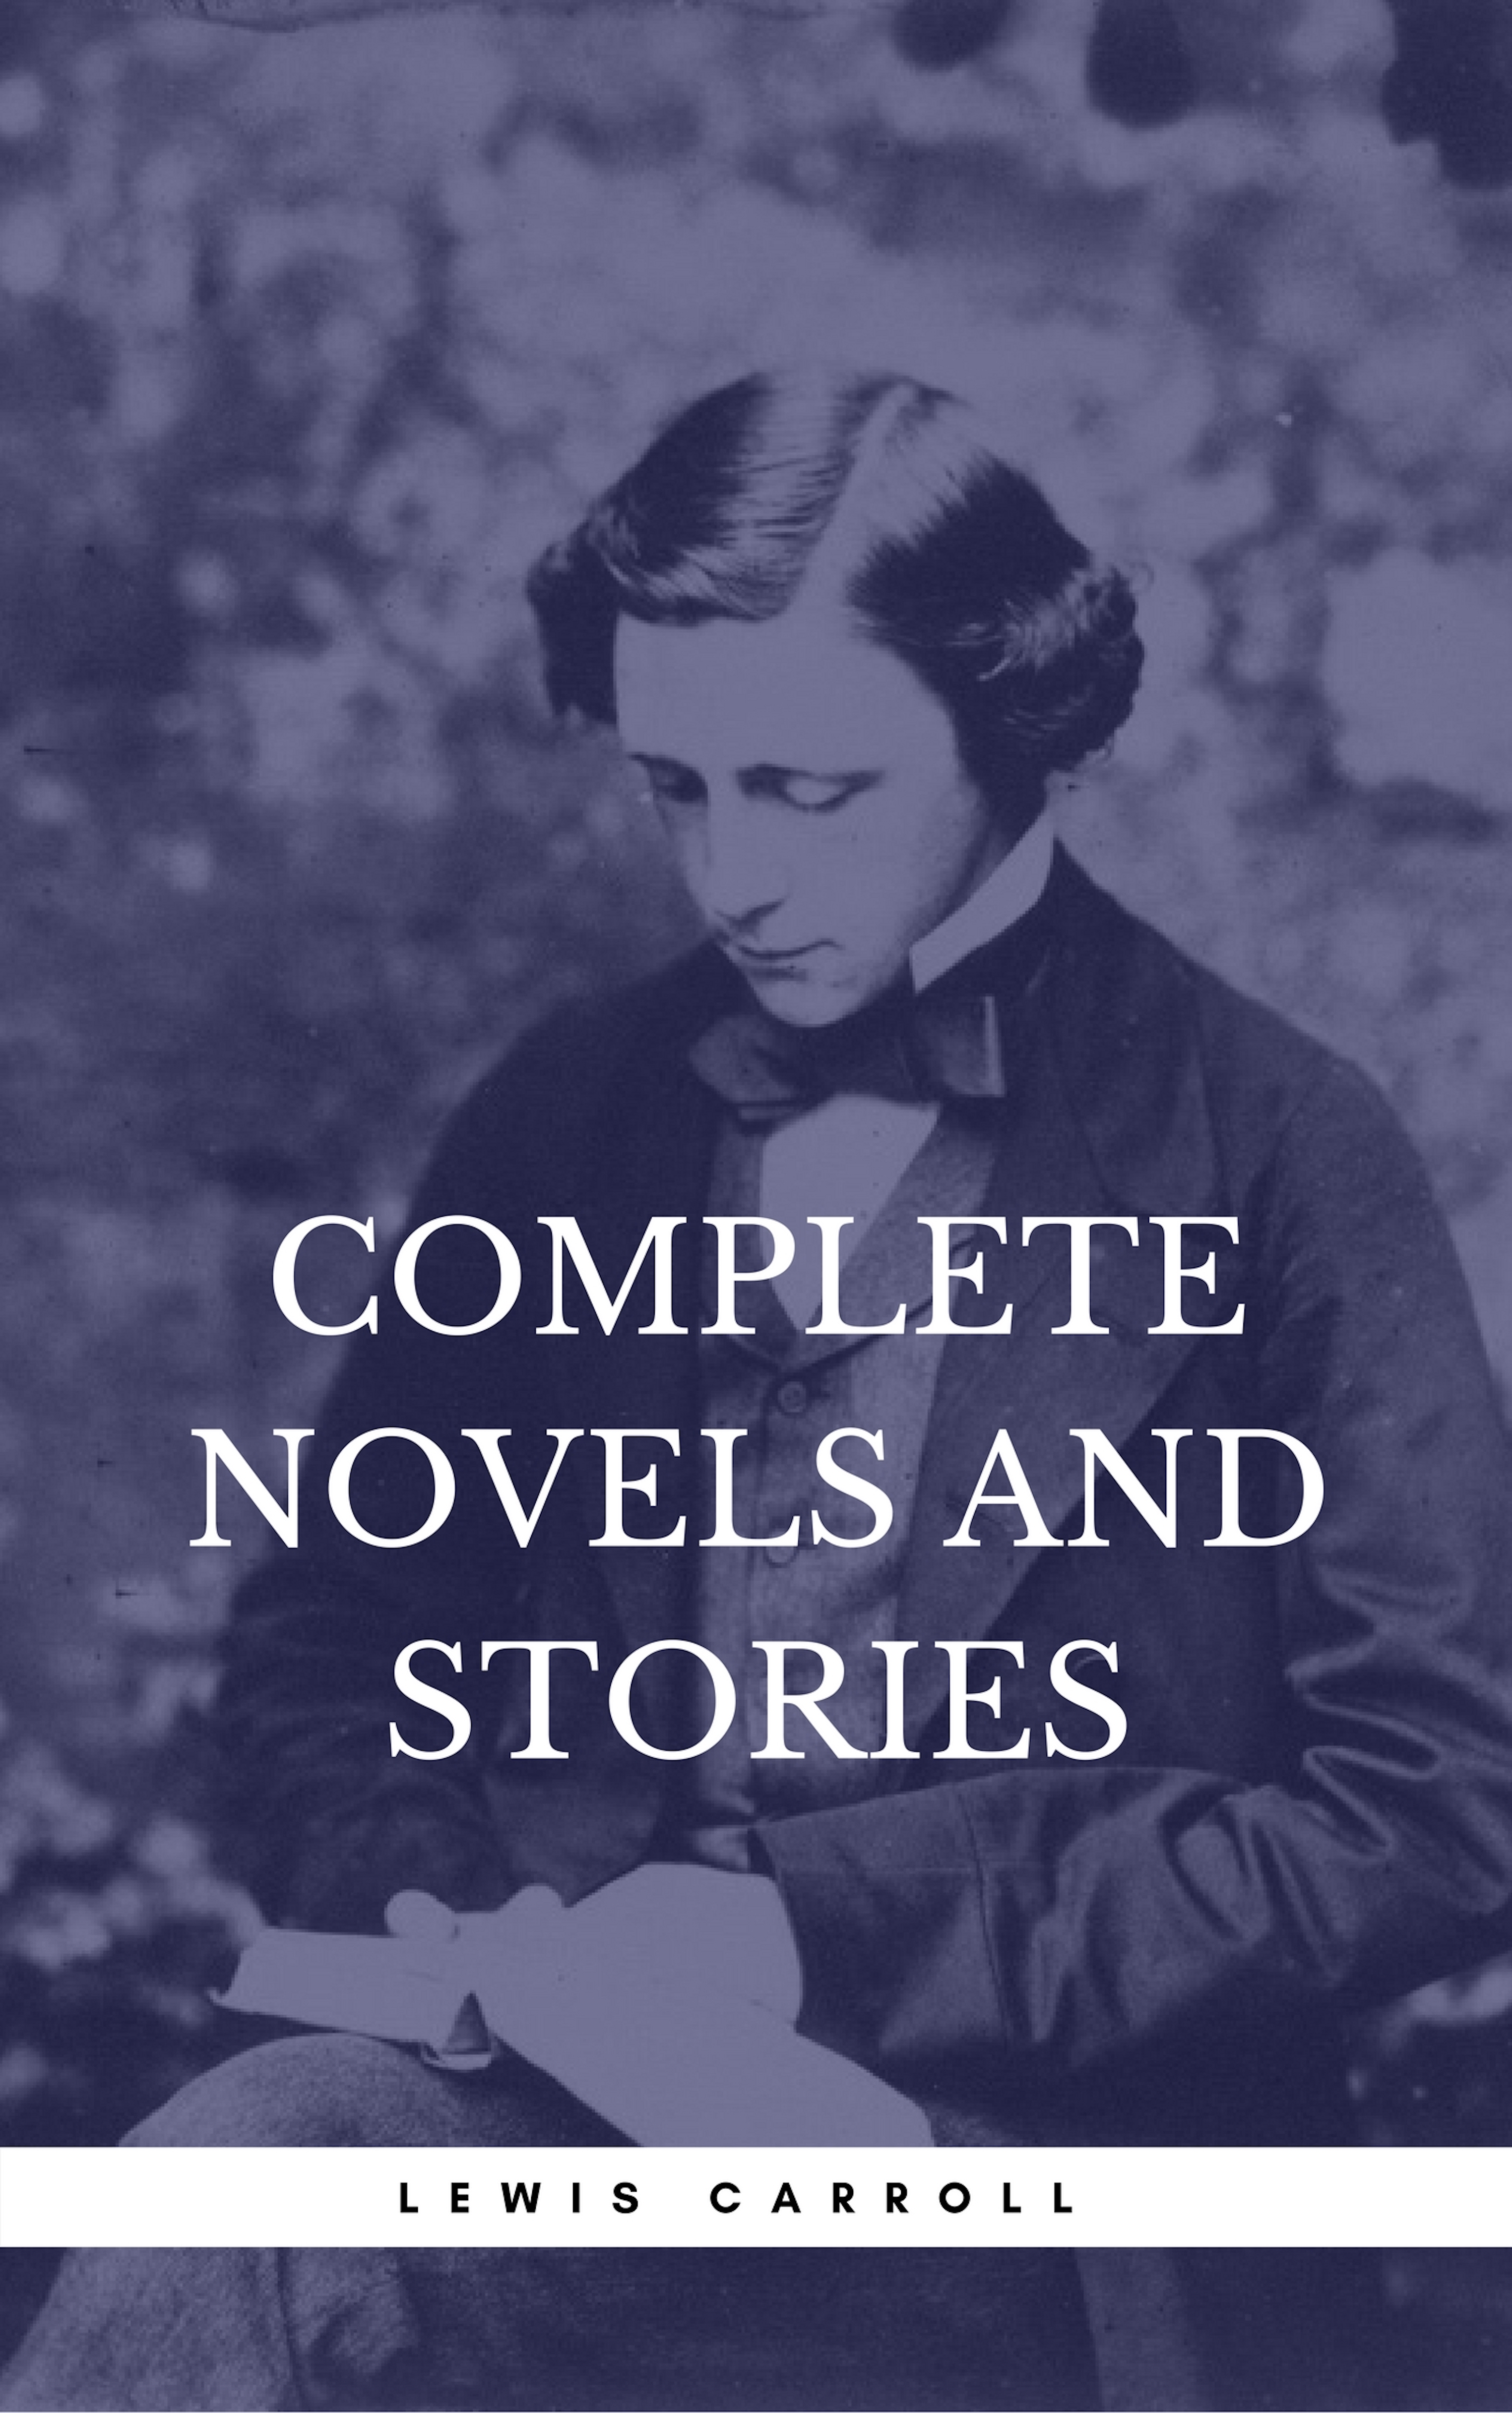 Льюис Кэрролл Carroll, Lewis: Complete Novels And Stories (Book Center) lewis carroll lewis carroll a tangled tale bruno s revenge and other stories